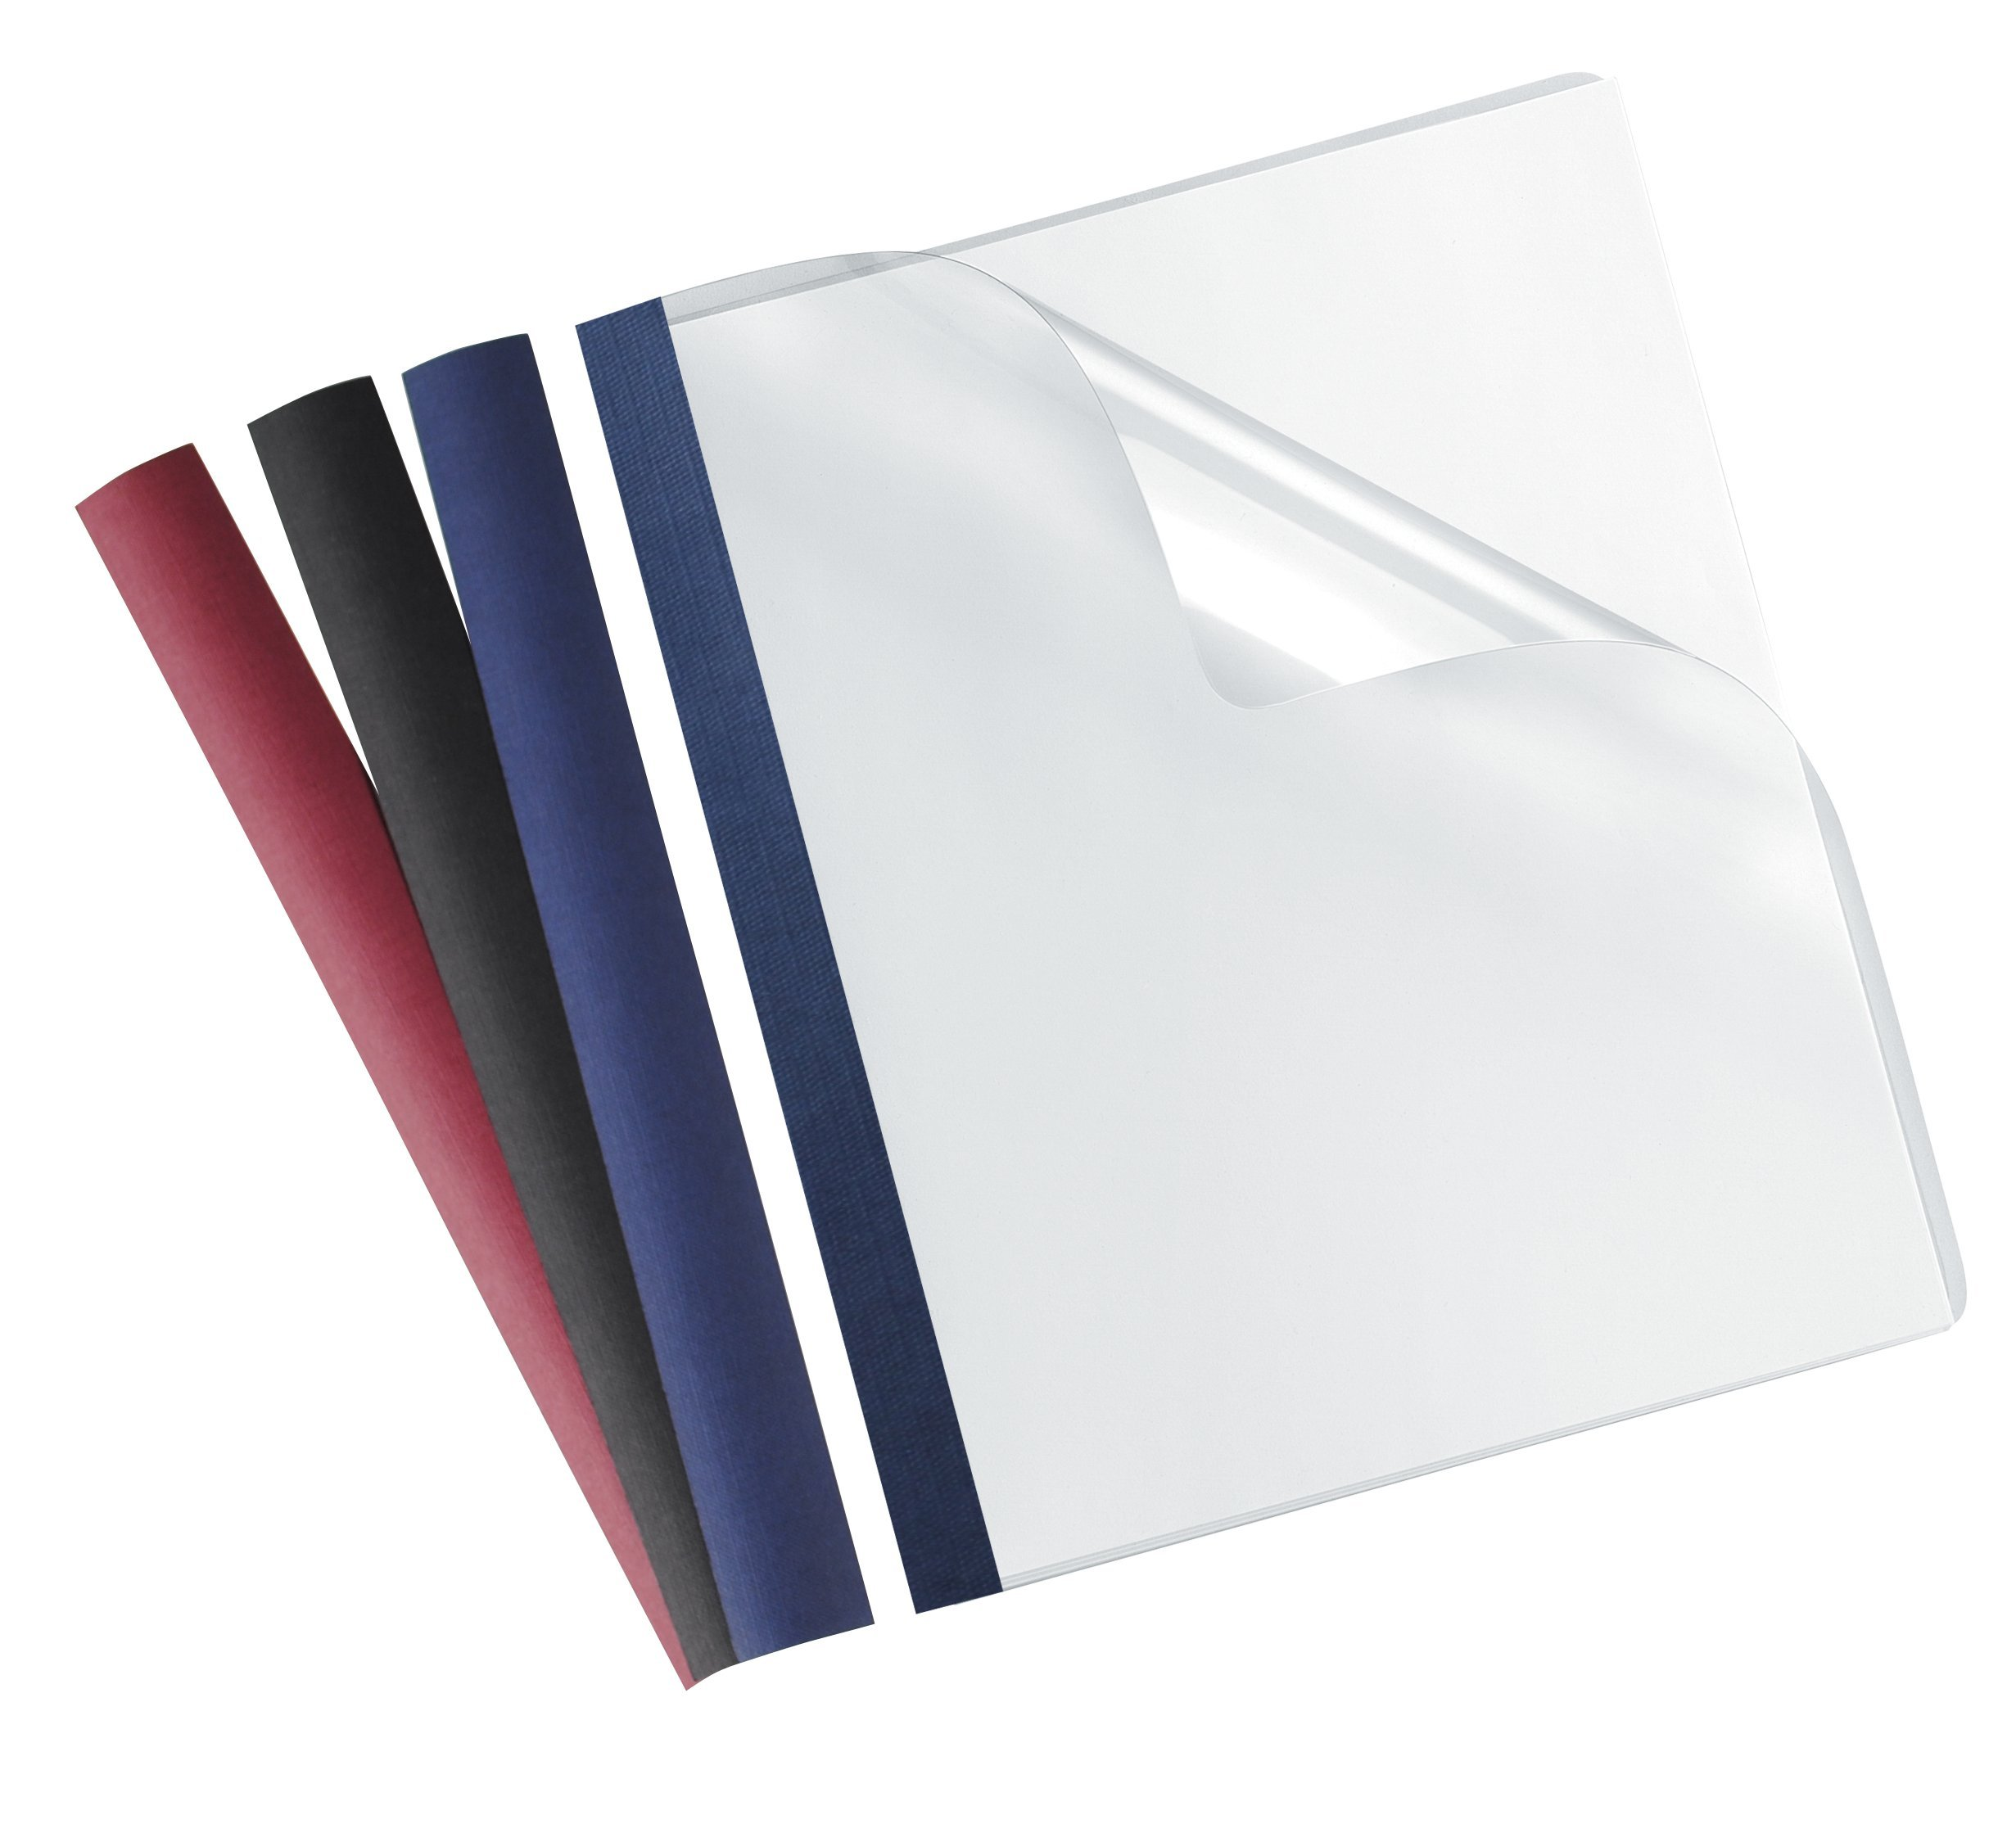 Fellowes Recyclable Binding Covers Ultra Clear, 5 Mil, Letter, 100 Pack (5242501) by Fellowes (Image #2)